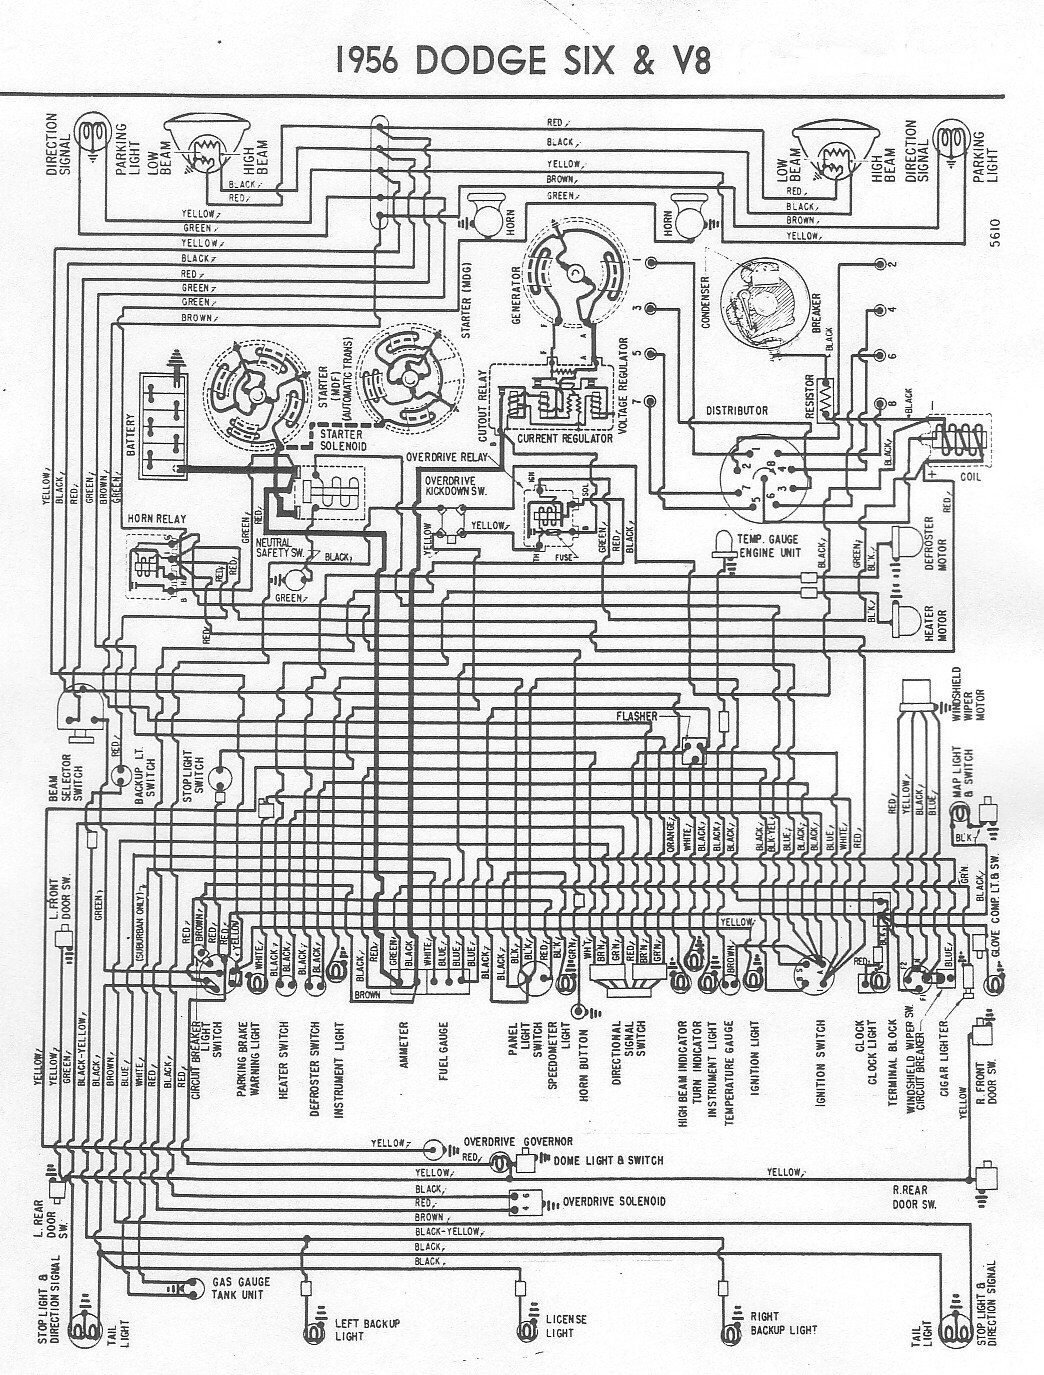 I Am Looking For The Wiring Diagram For A 1956 Dodge Truck